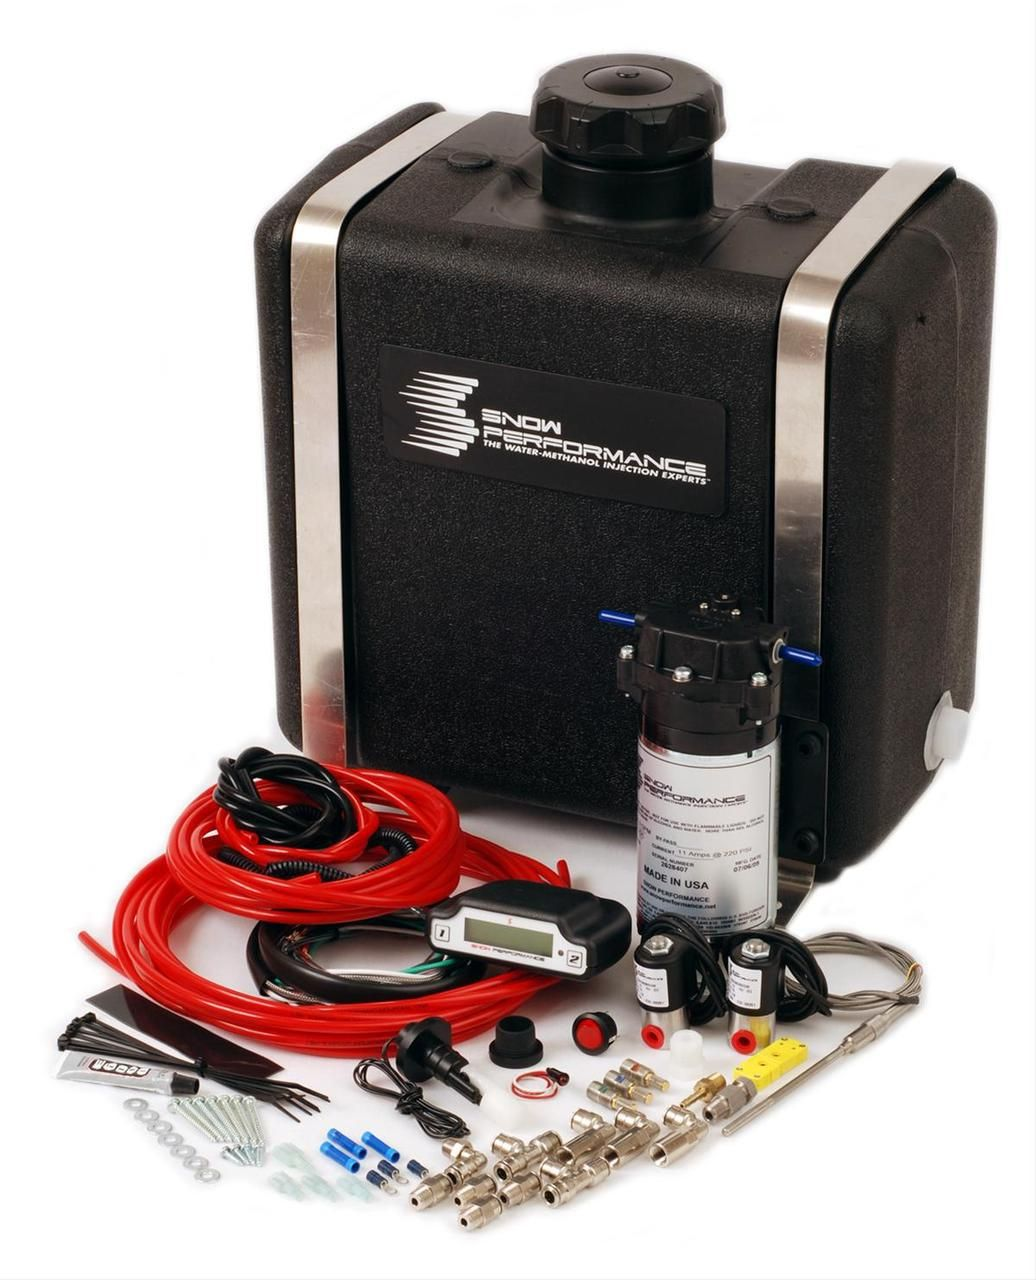 Snow performance diesel tow max water methanol injection systems 47103